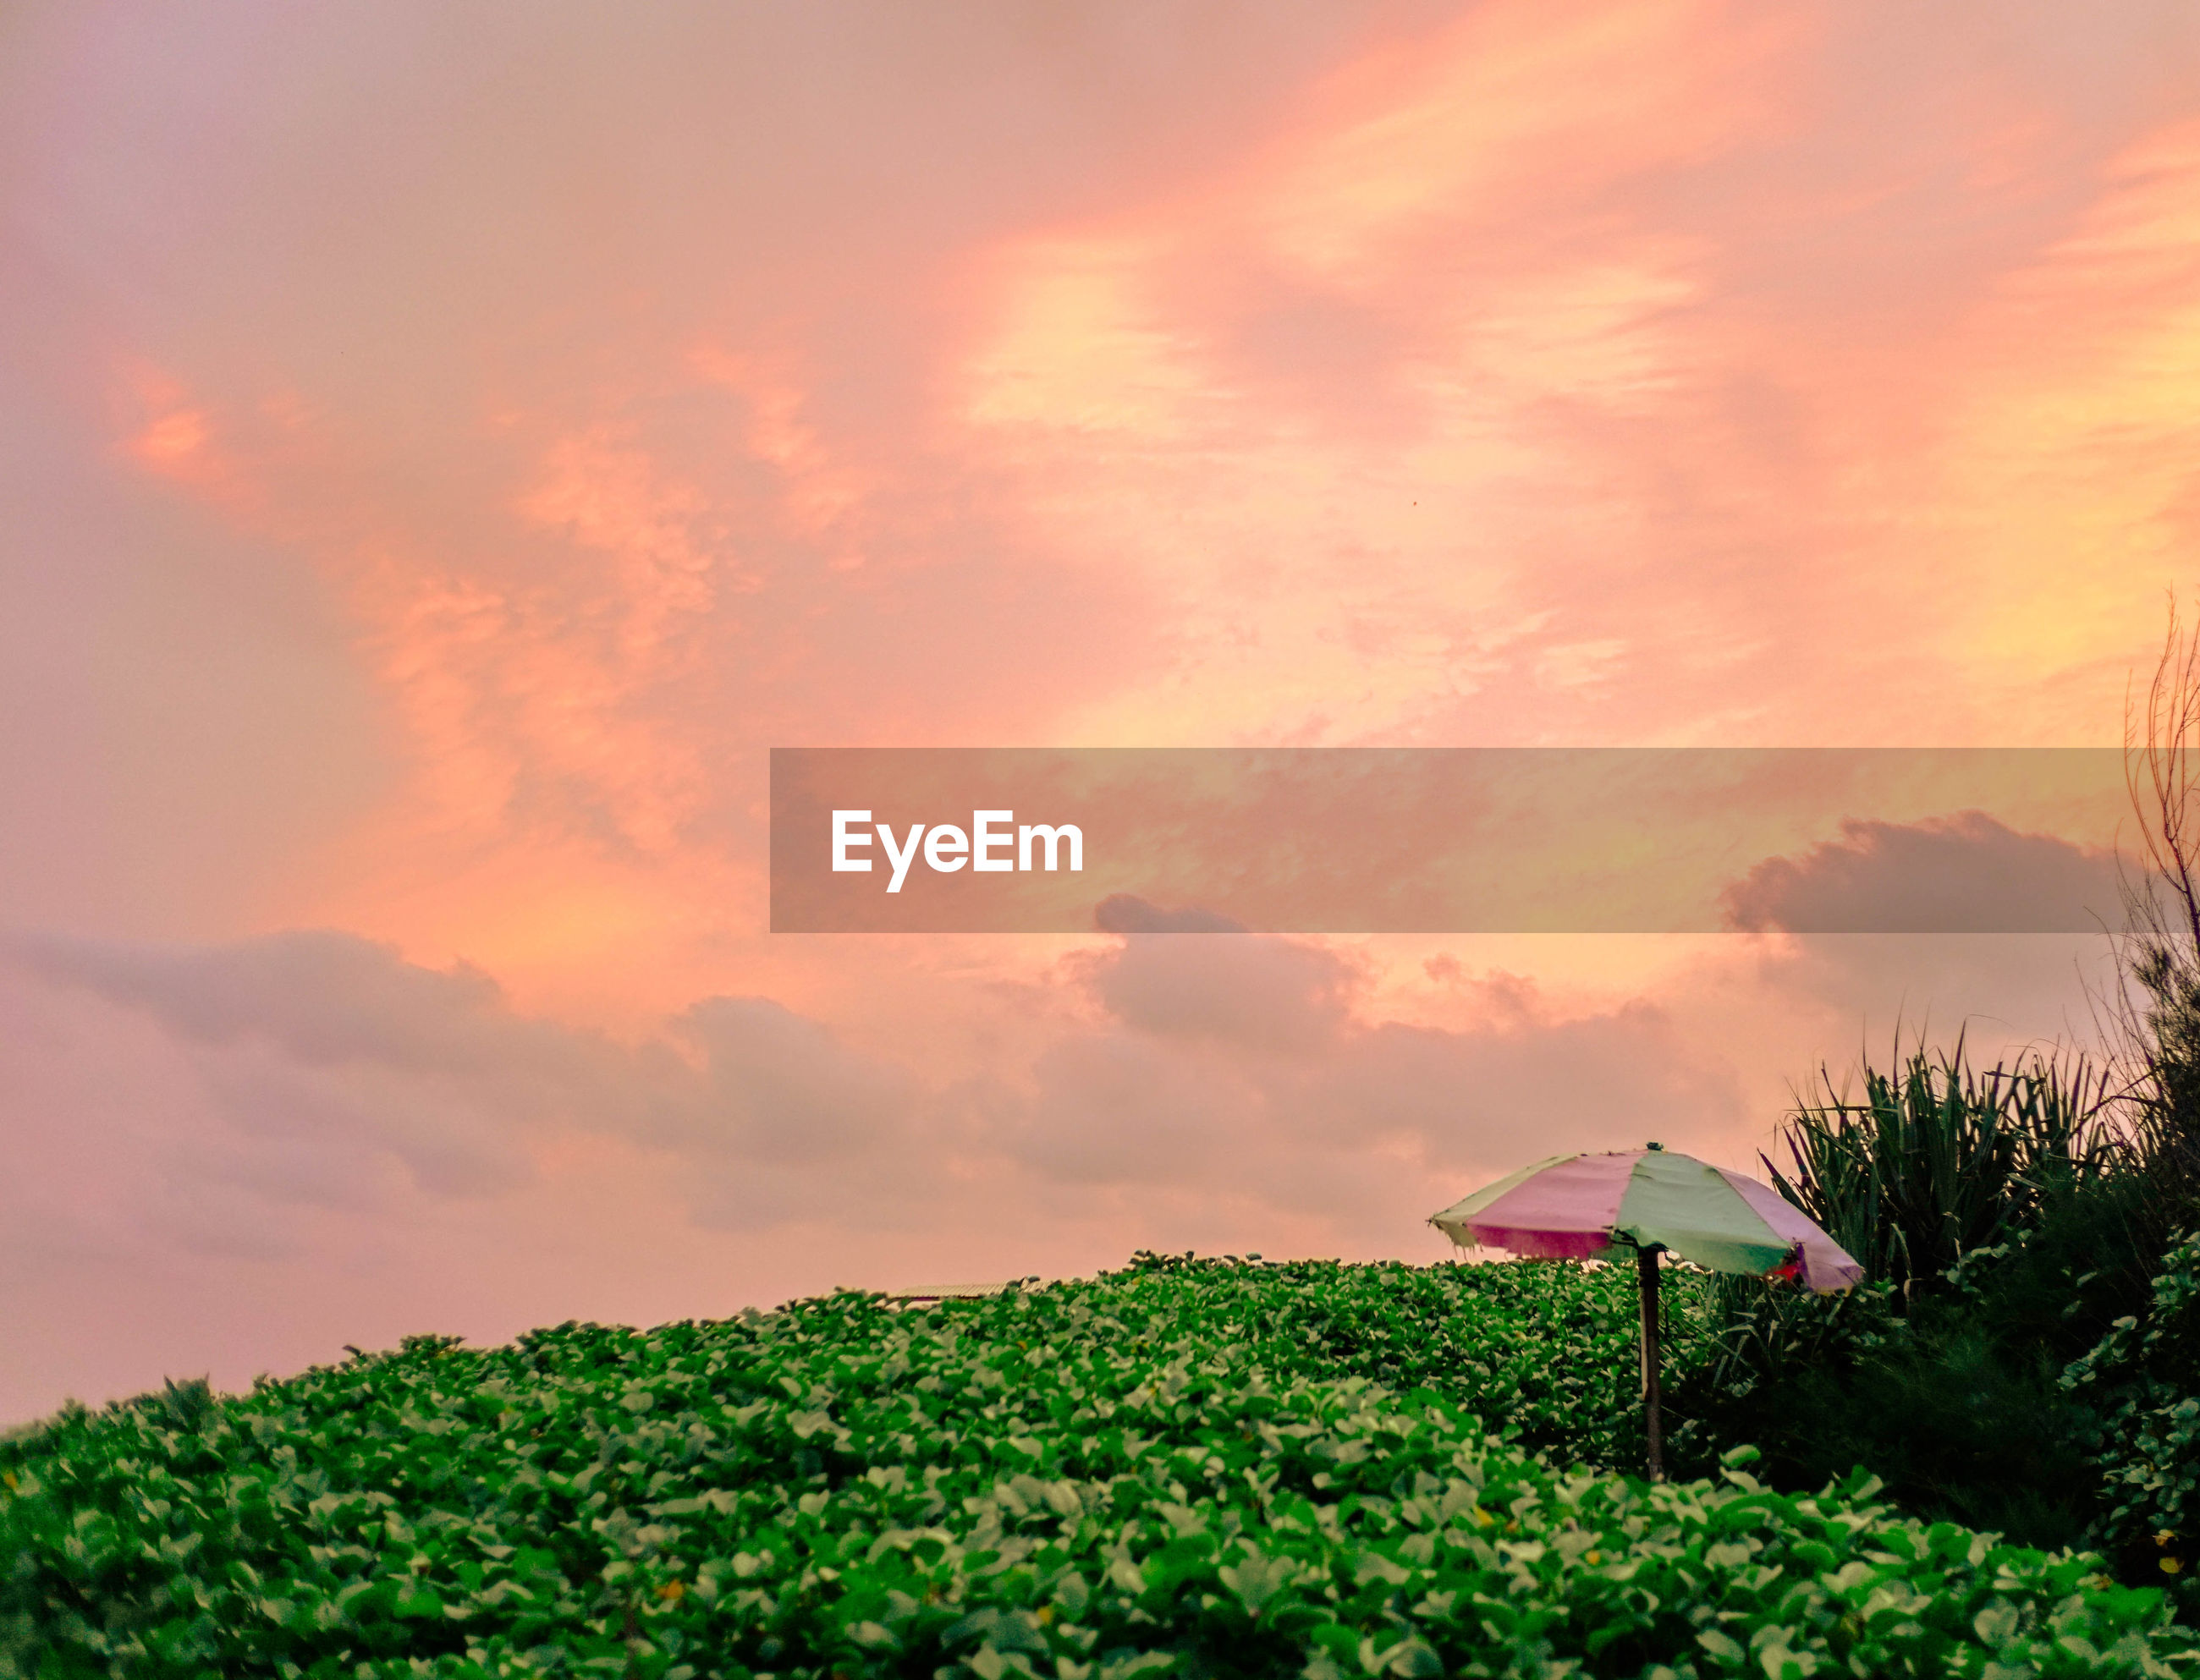 PLANTS GROWING ON LAND AGAINST SKY DURING SUNSET